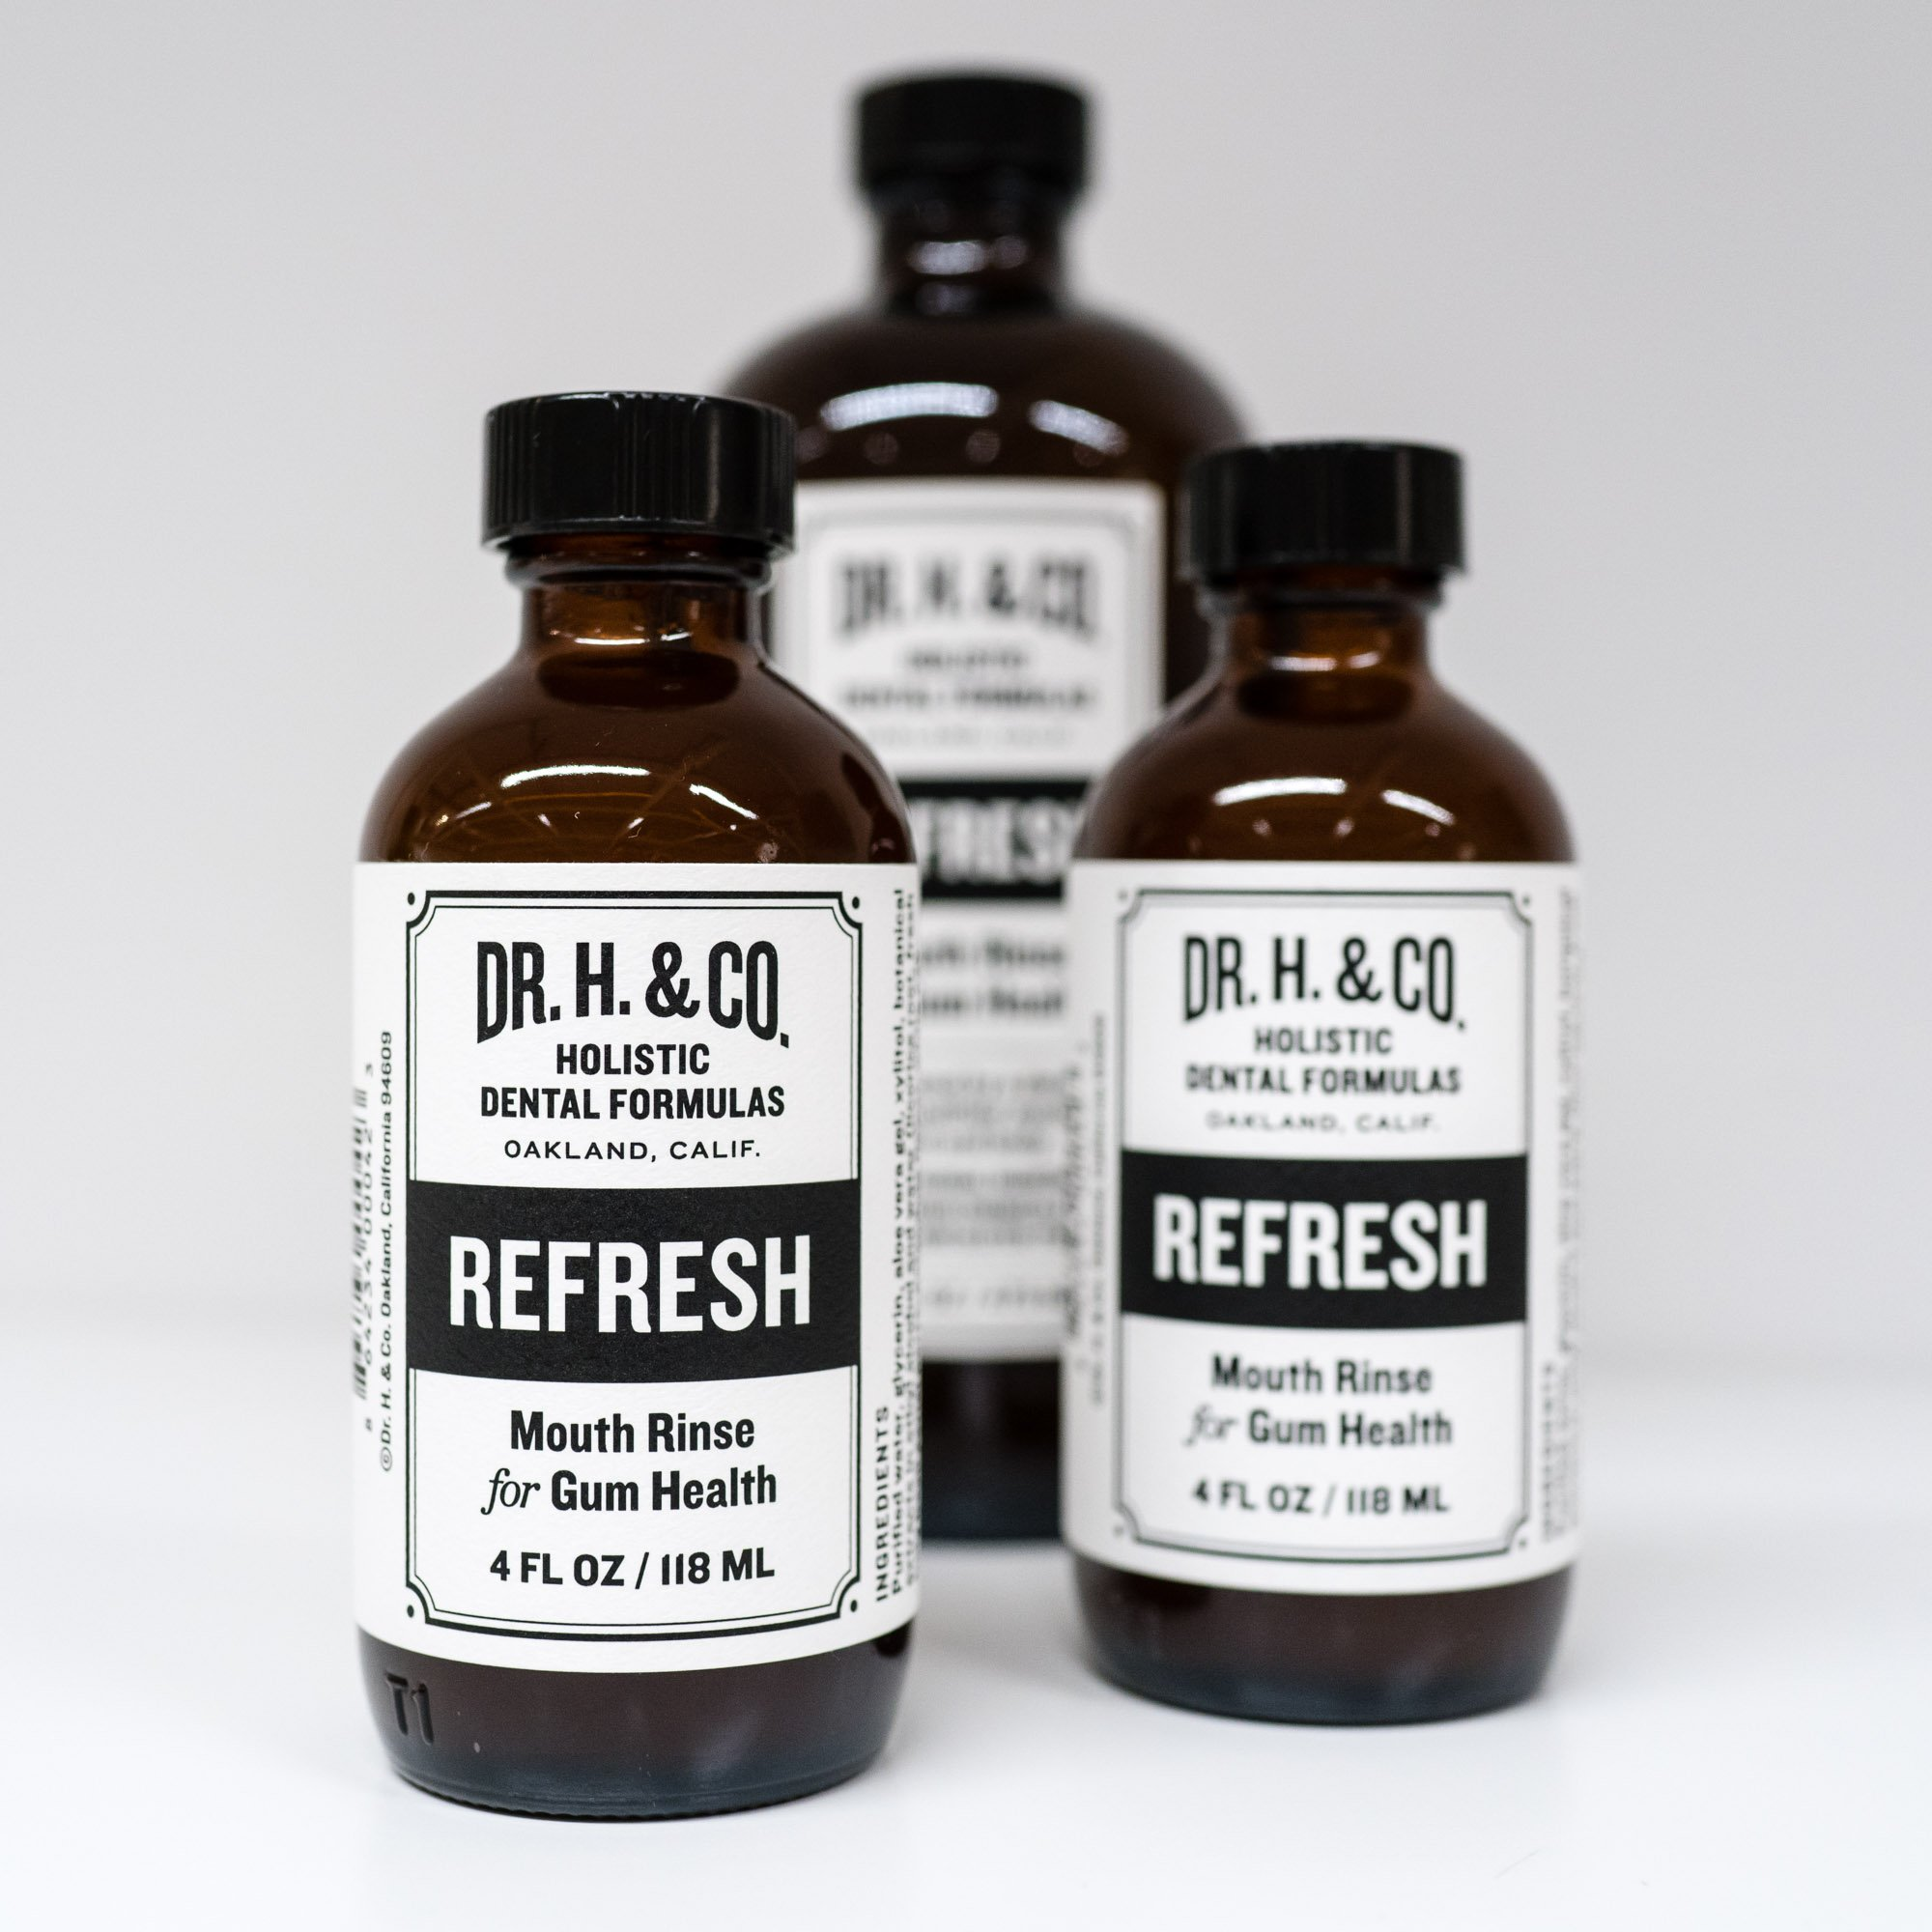 Dr. H. & Co. Dentist Formulated Refresh Mouthwash Ð All Natural Herbal and Holistic Mouth Rinse for Healthy Gums and Teeth (4 oz Glass Bottle) by Dr. H. & Co. (Image #6)